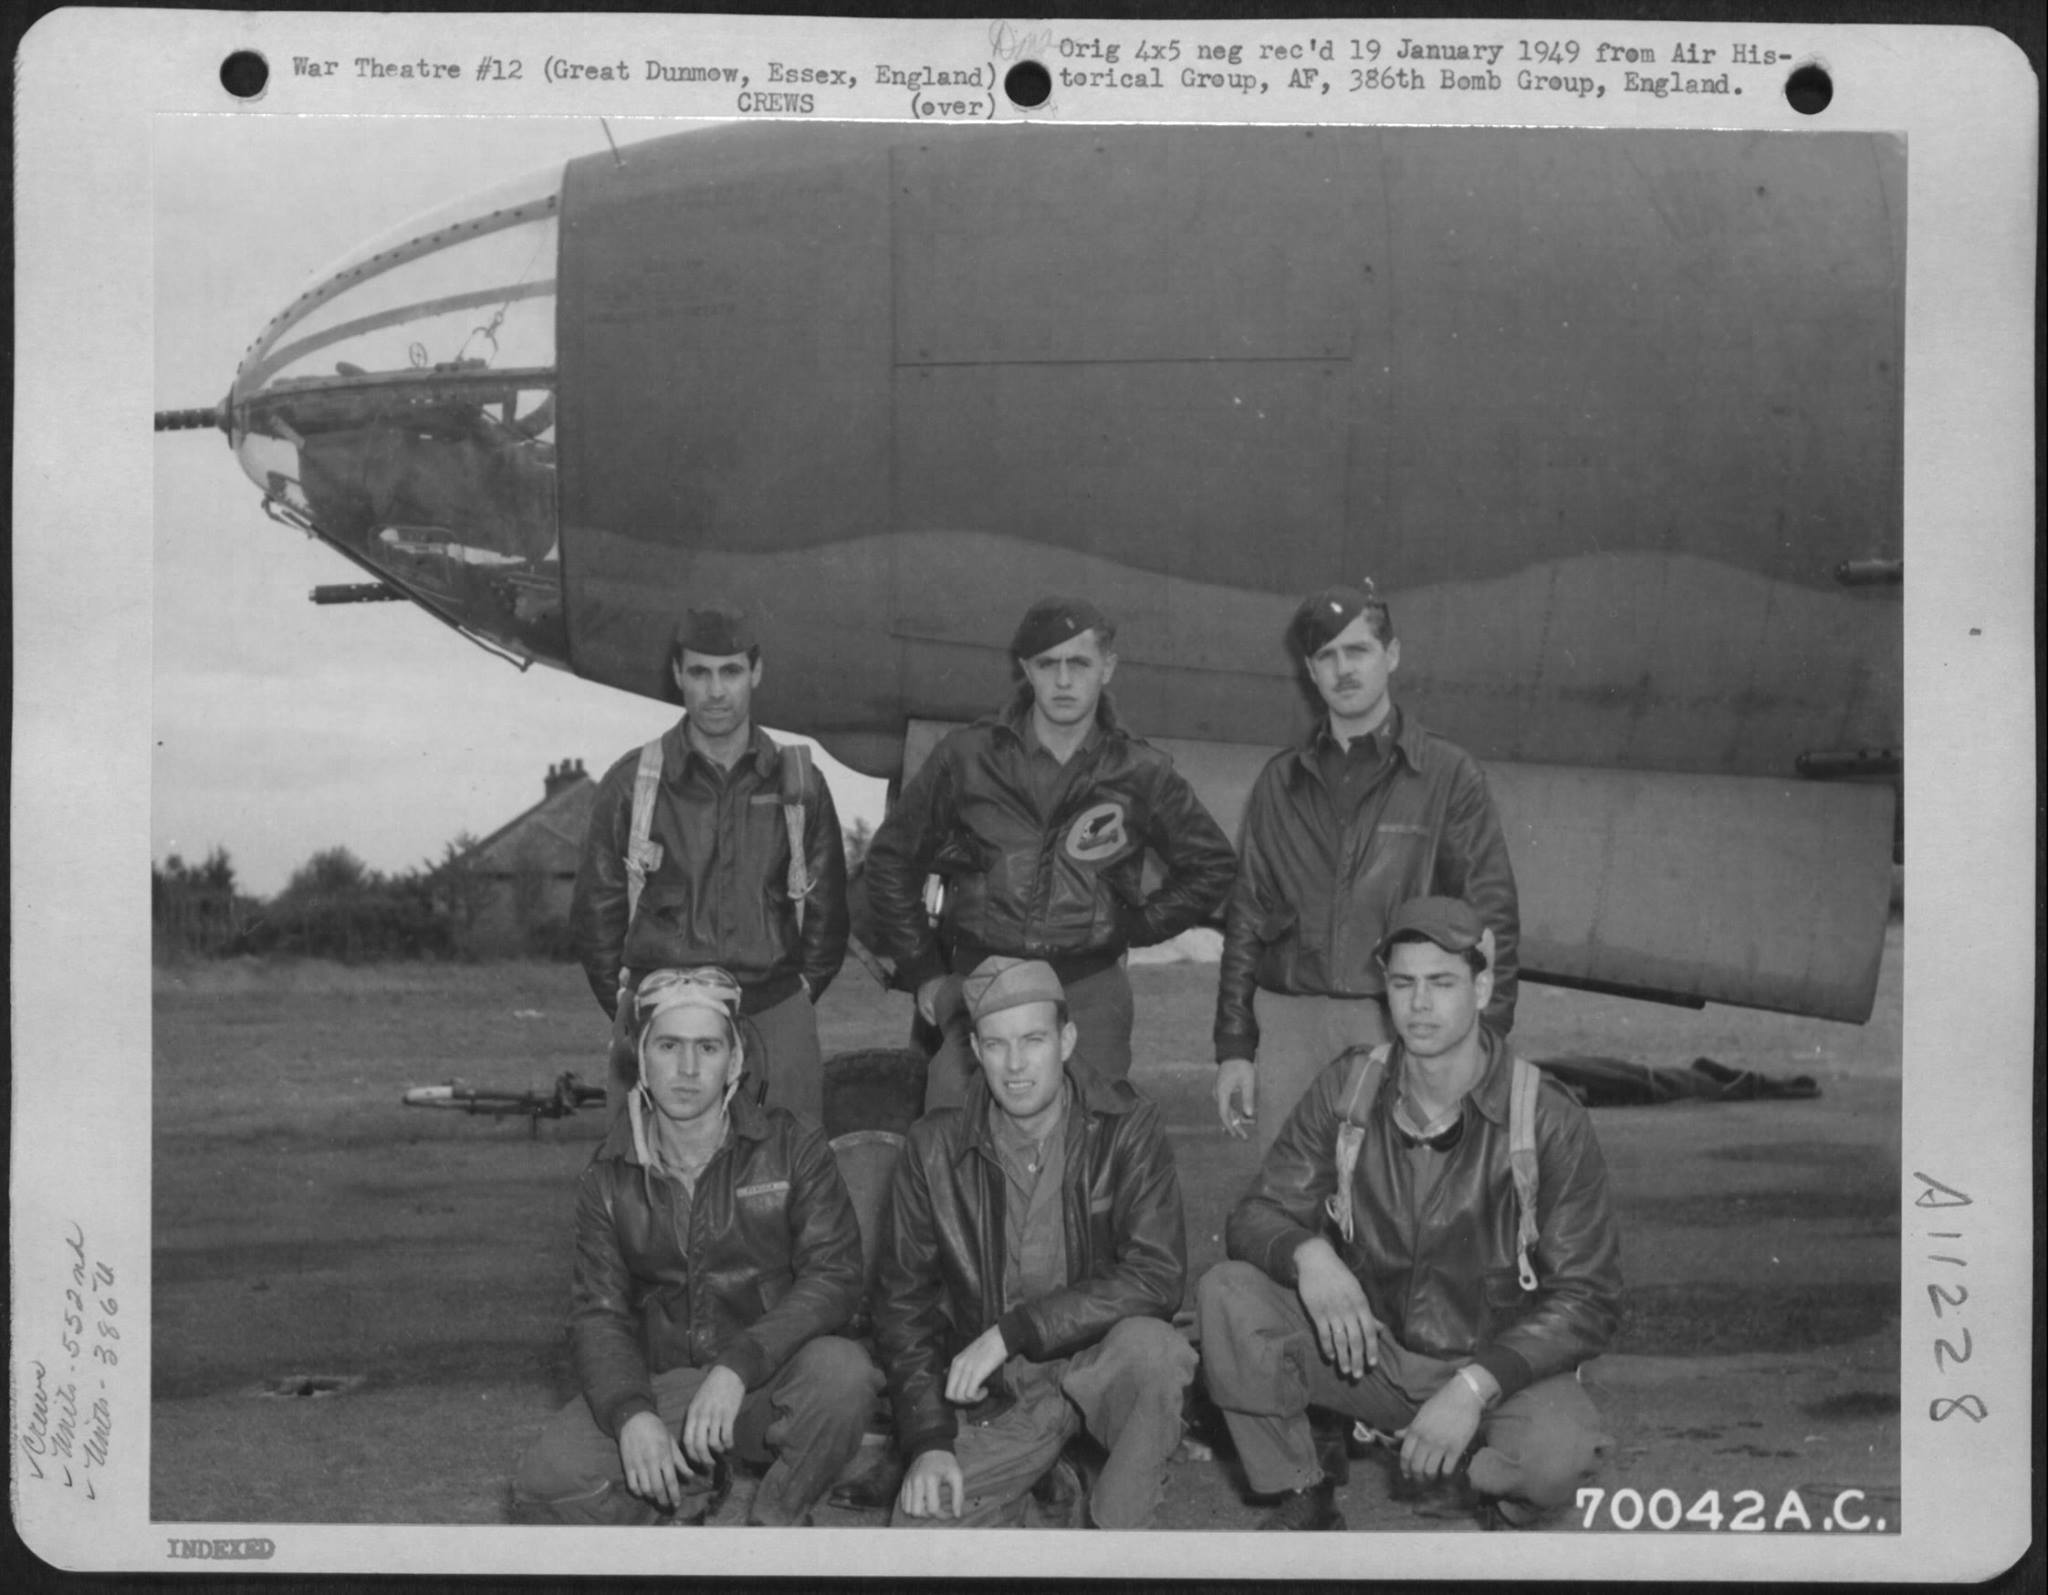 USAAF B 26 Marauder 386BG552BS with crew at their base in Great Dunmow Essex England 14 Sep 1943 02